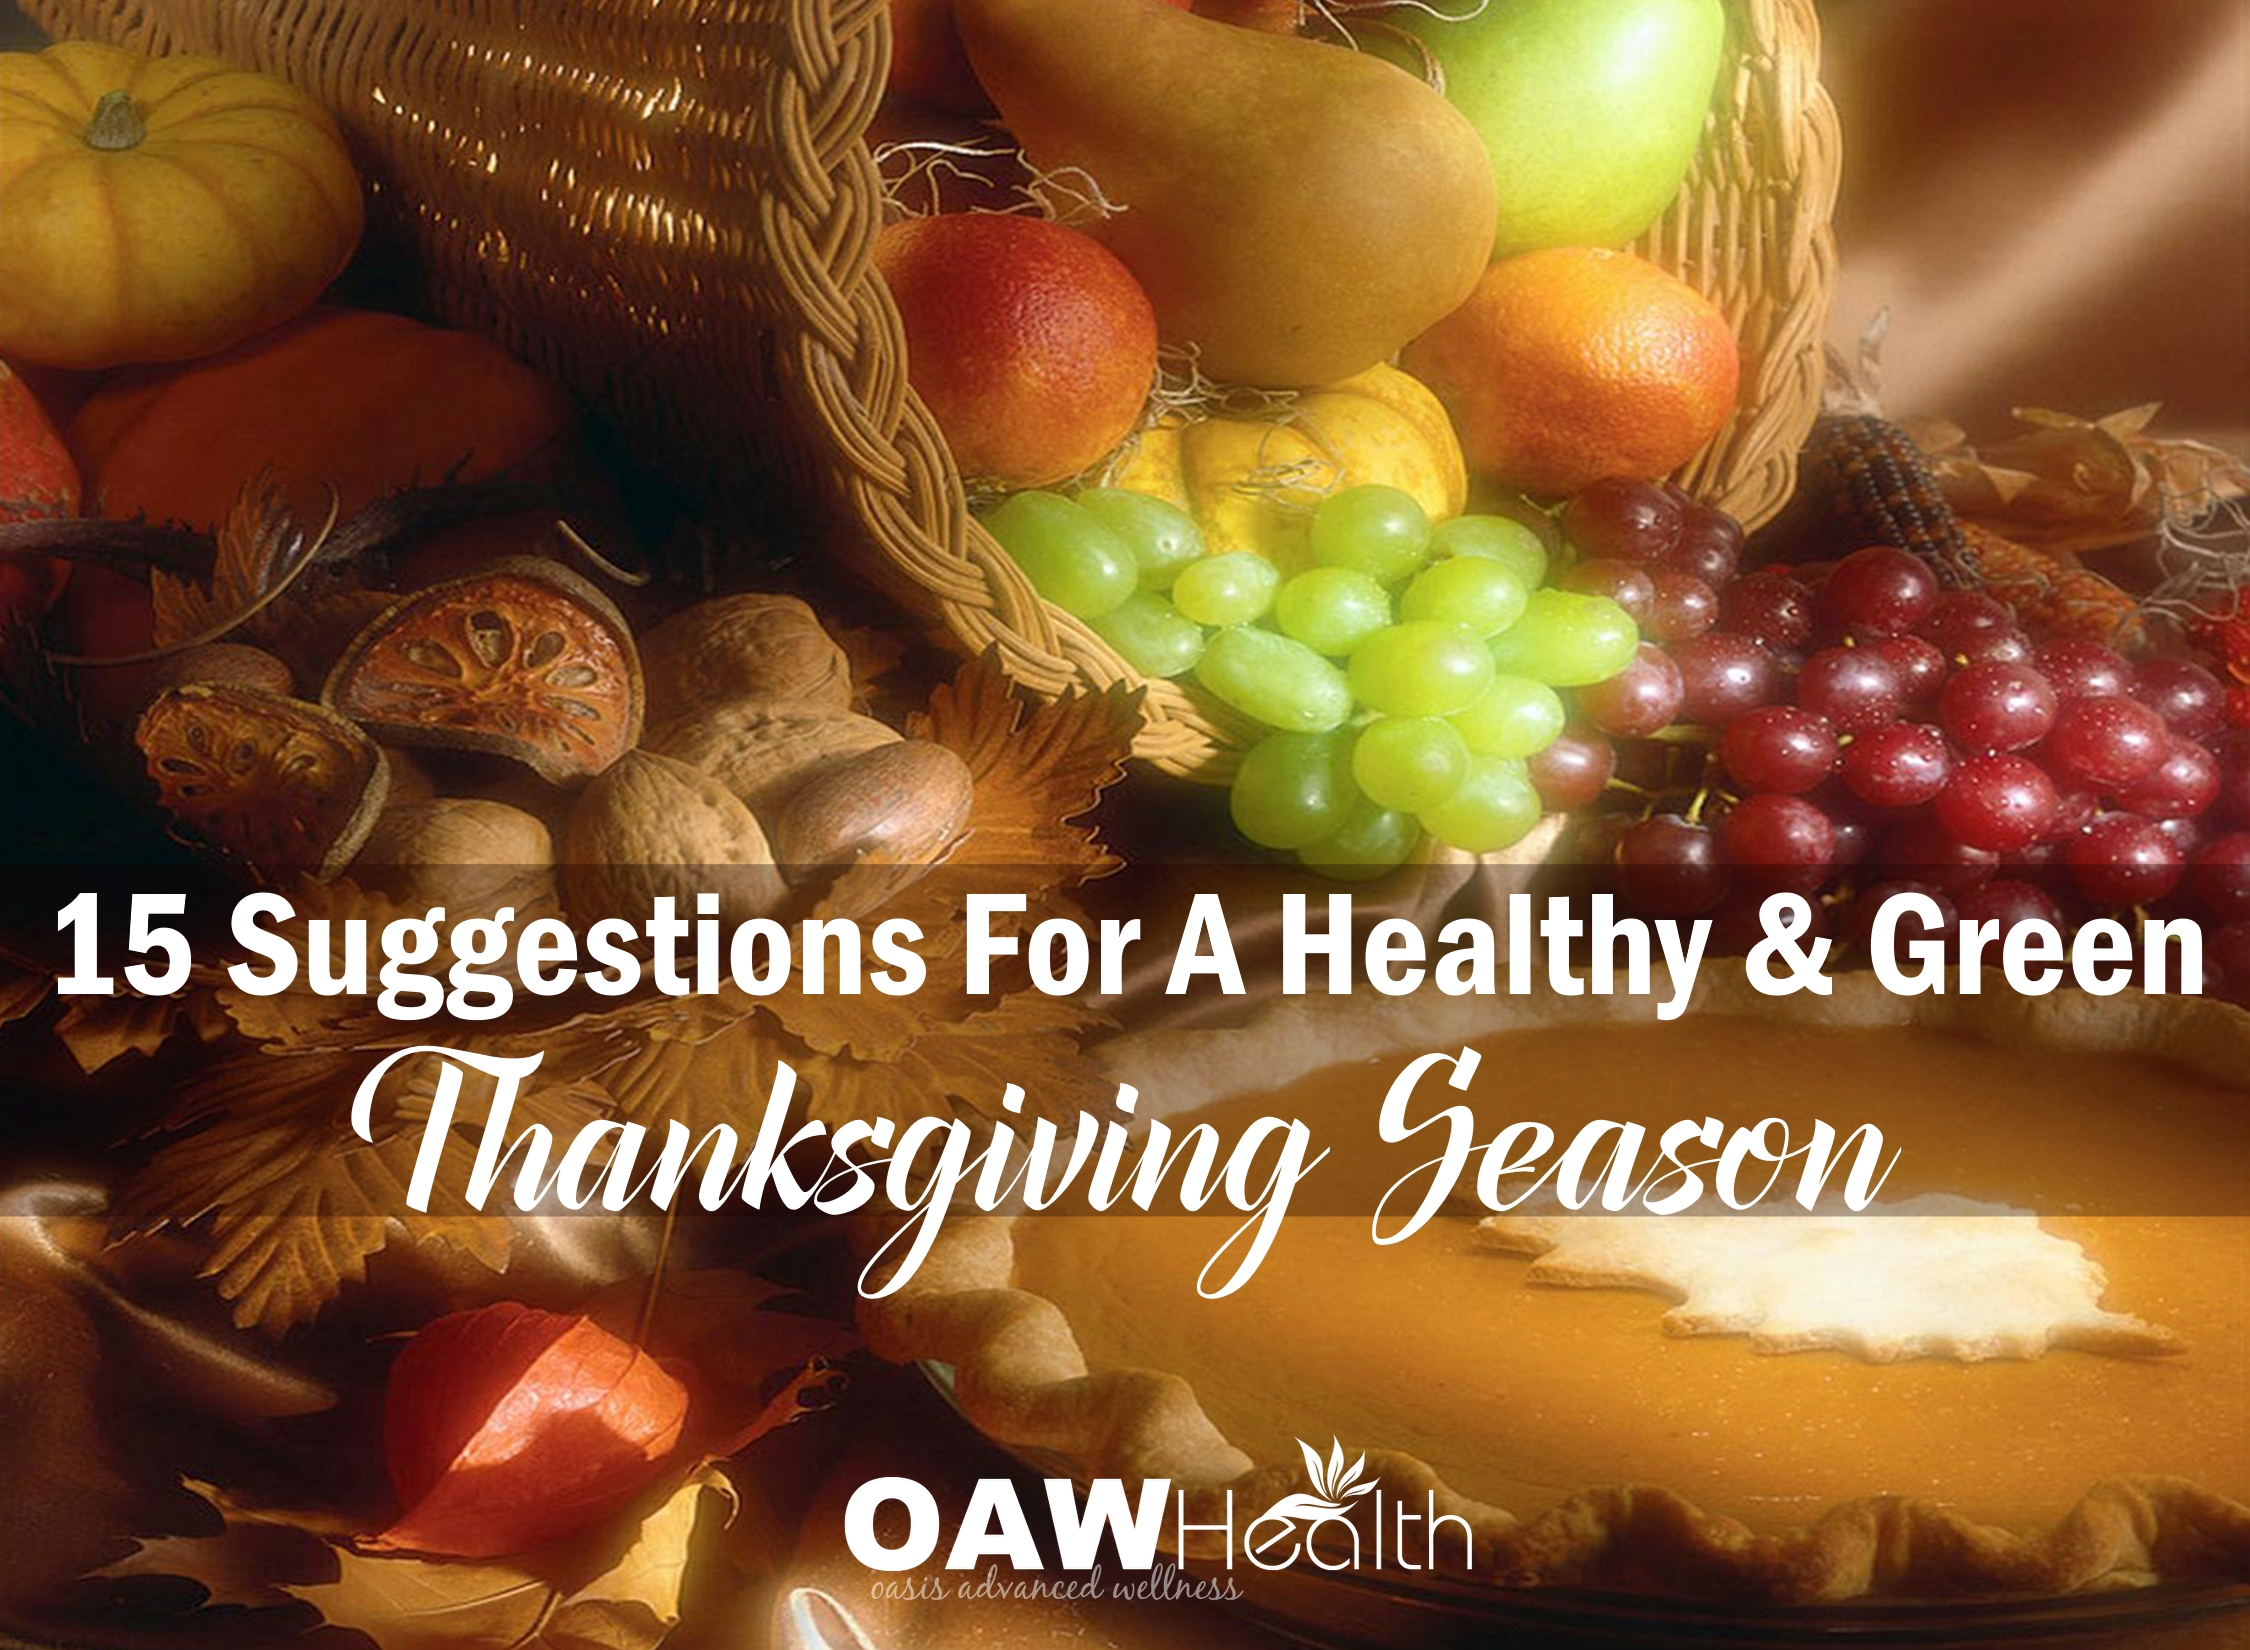 15 Suggestions For a Healthy & Green Thanksgiving Season